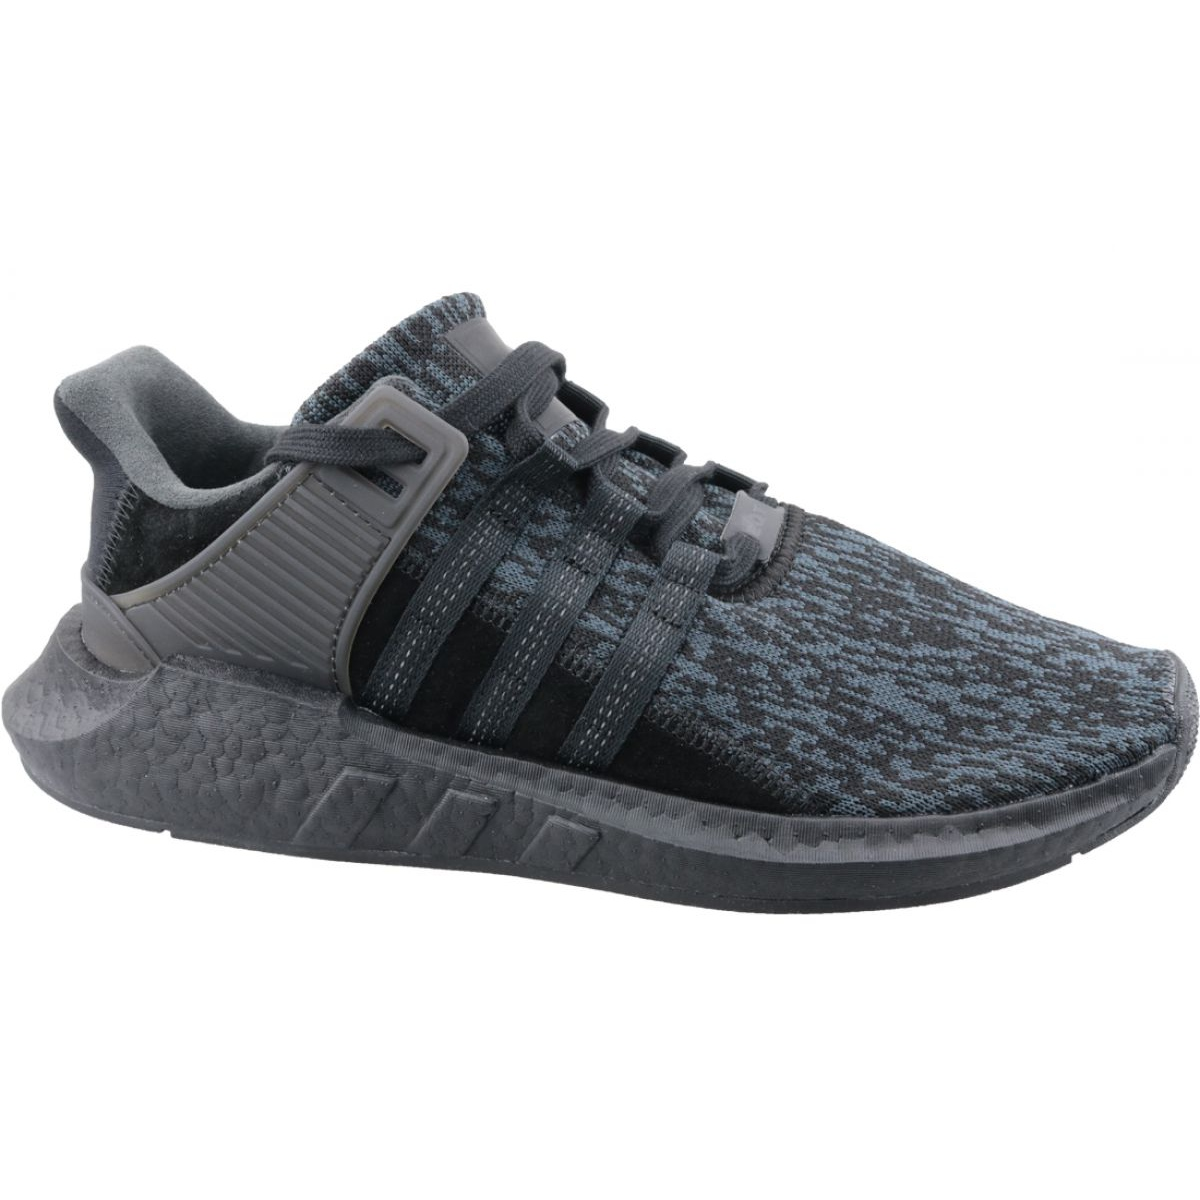 Adidas Eqt Support 93/17 M BY9512 shoes